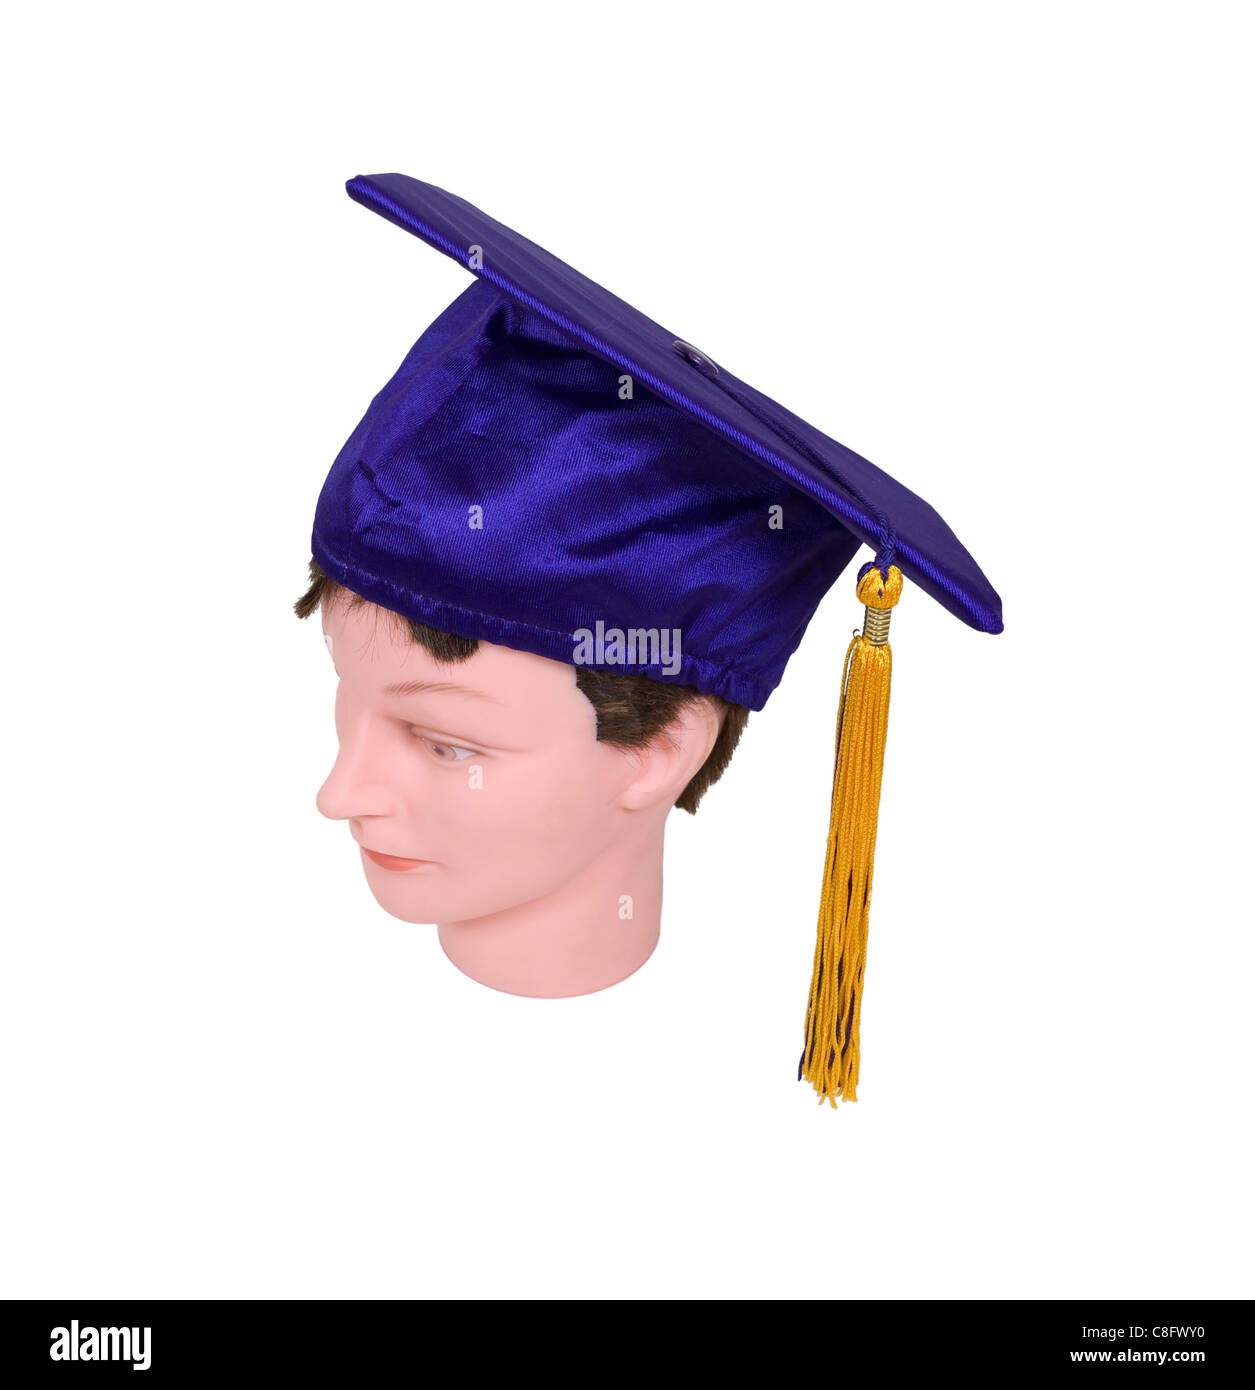 Male graduate wearing the graduation mortar board with tassel used during ceremonies - path included - Stock Image